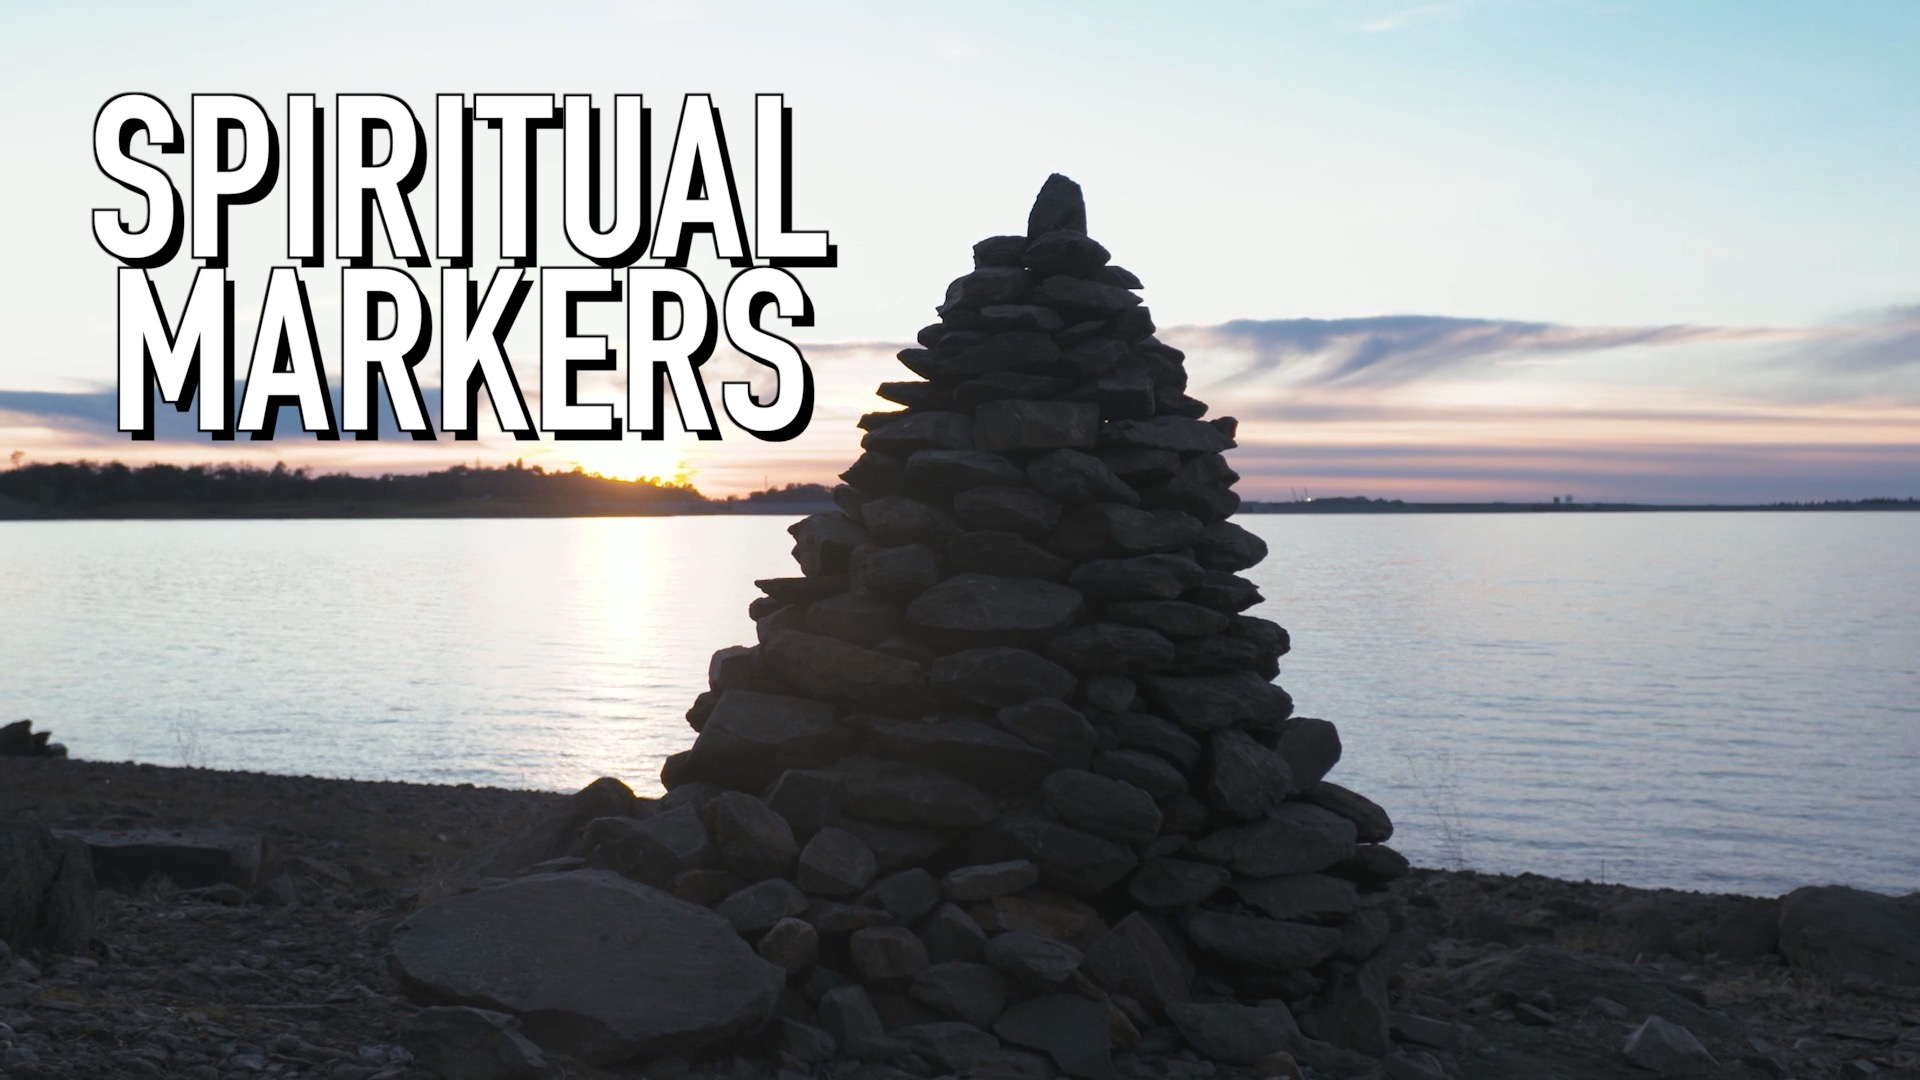 Spiritual Markers - All of us have monumental divine moments when God left His mark on our lives. We tend to forget those moments over time.In this series, Pastor Jamie surveys a few Old Testament stories when God's people were commanded to build a spiritual marker so they would not forget what they learned about Him.